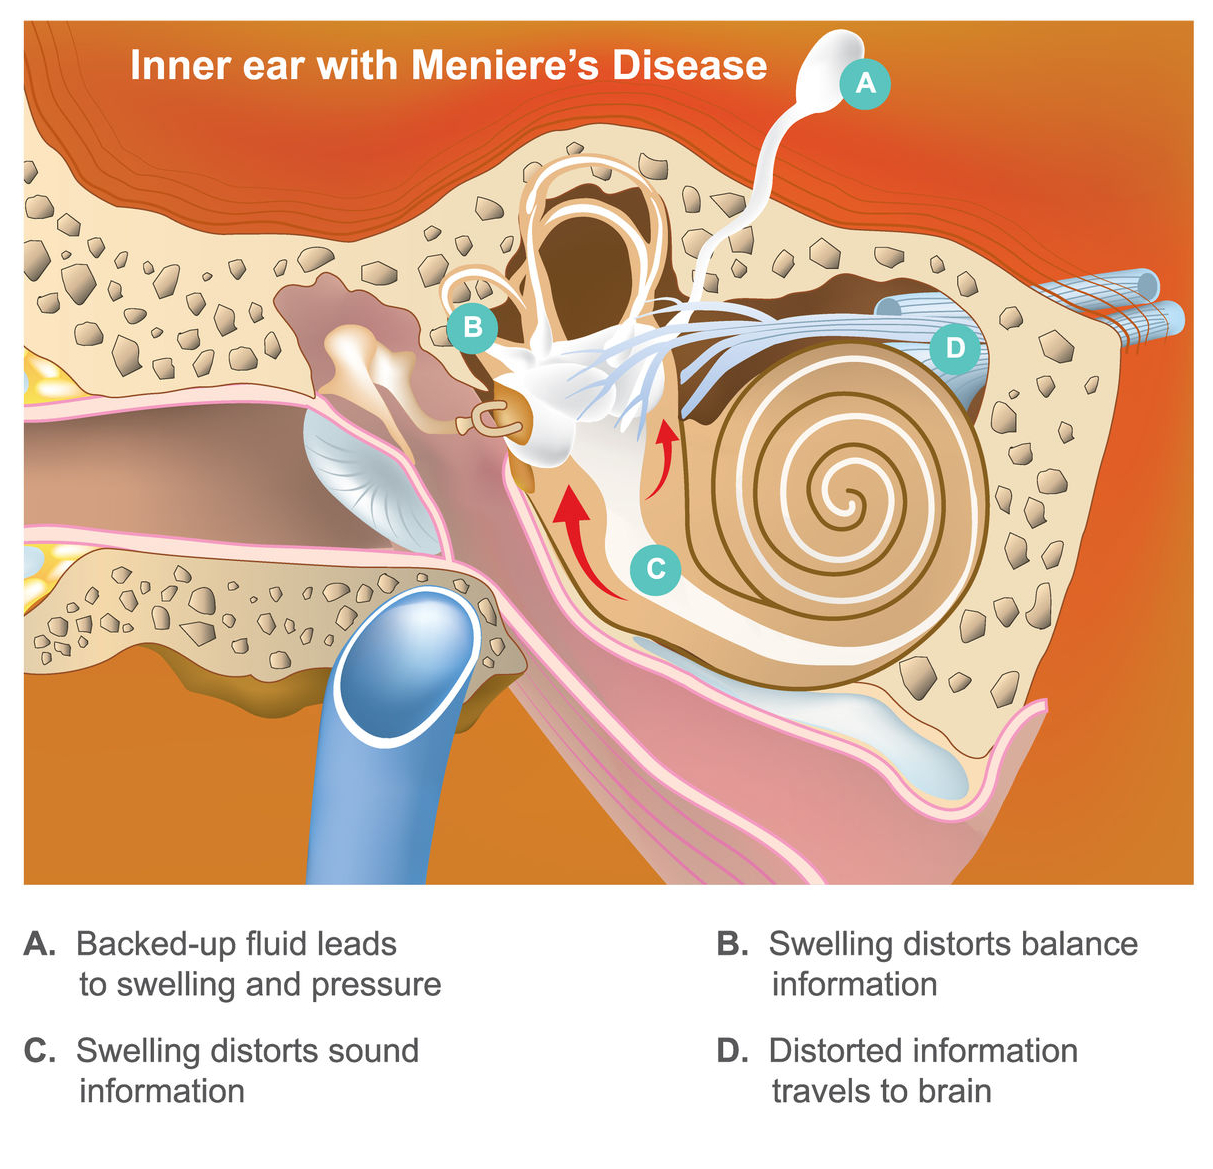 Meniere's disease - causes, symptoms, treatments